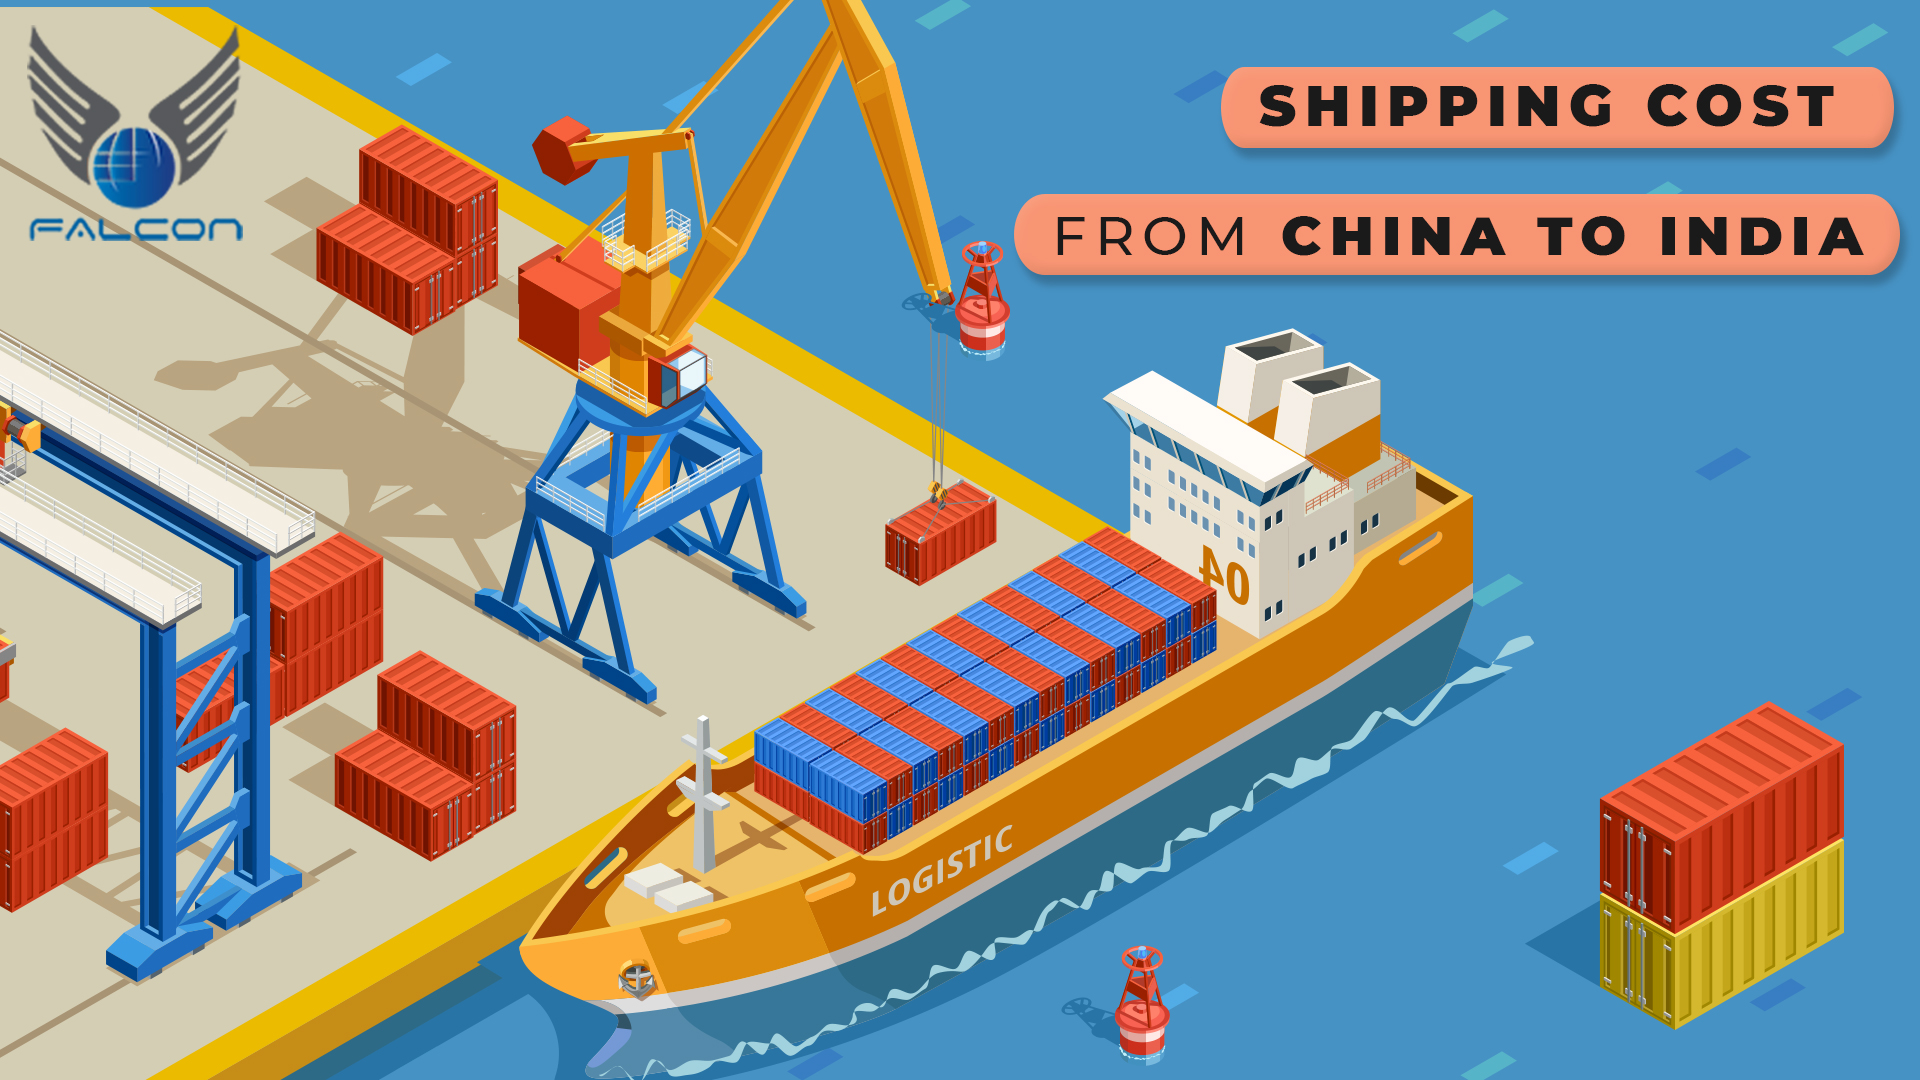 Shipping cost from China to India